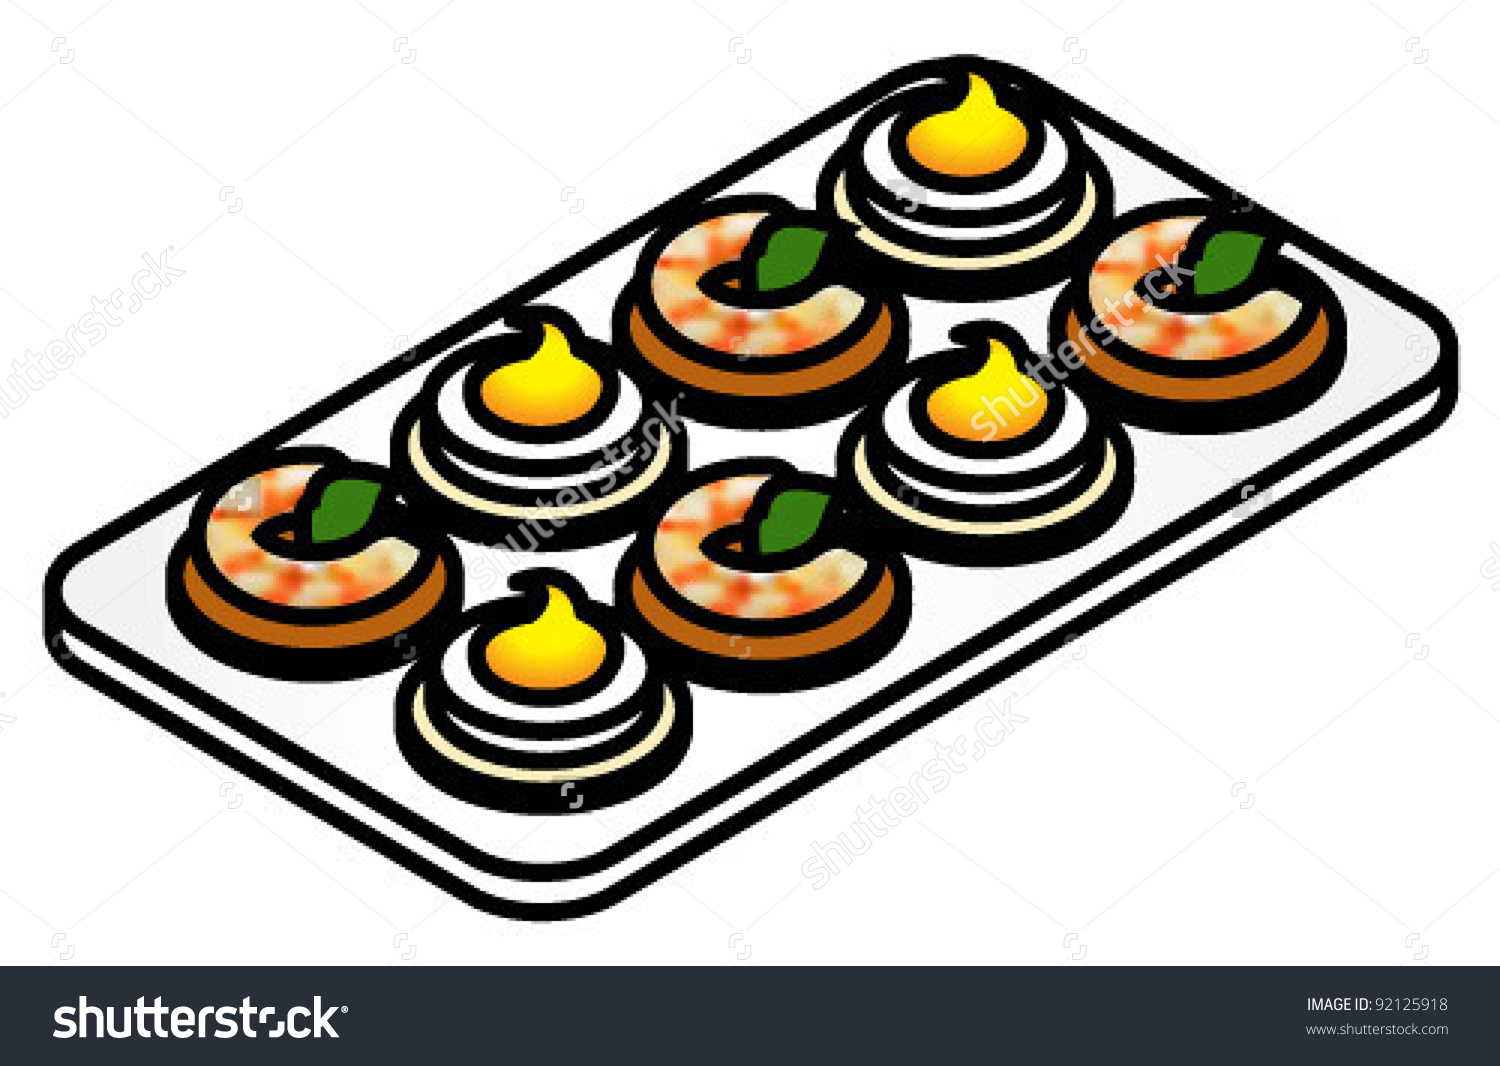 Plate Colorful Canapes Deviled Eggs Shrimp Stock Vector 92125918.